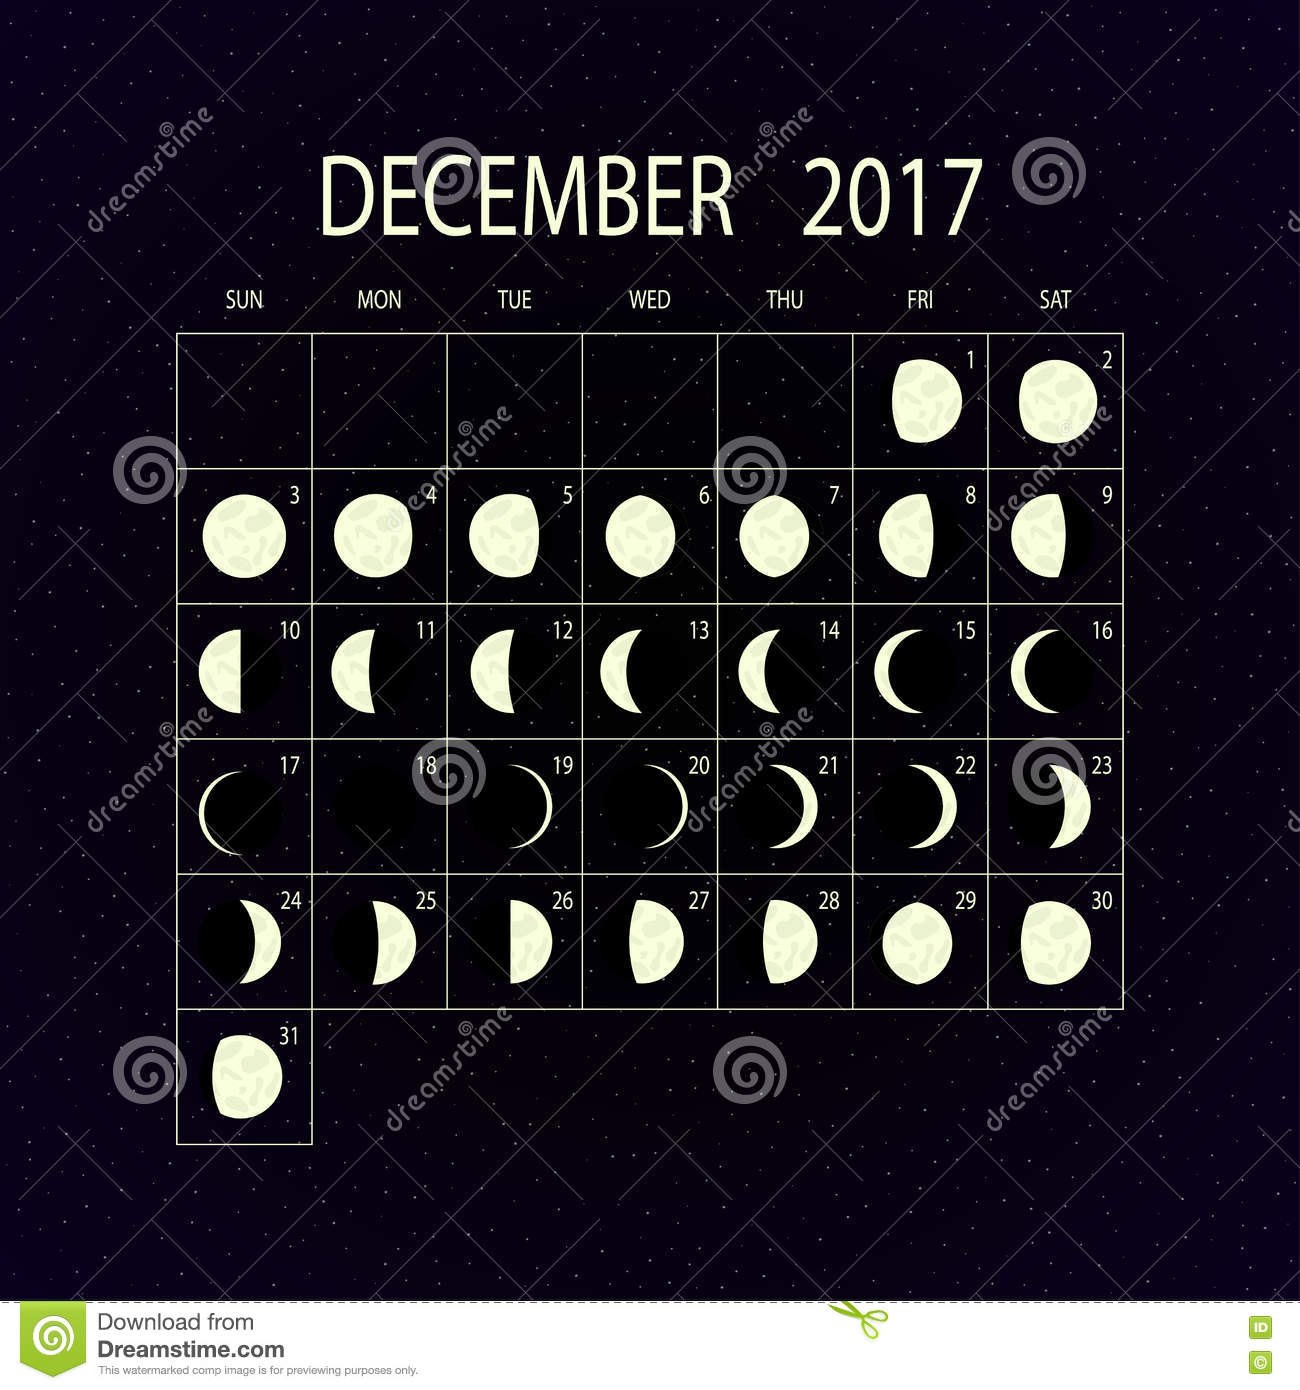 Lunar Calendar The Art Of Timing : Moon phases calendar for december vector